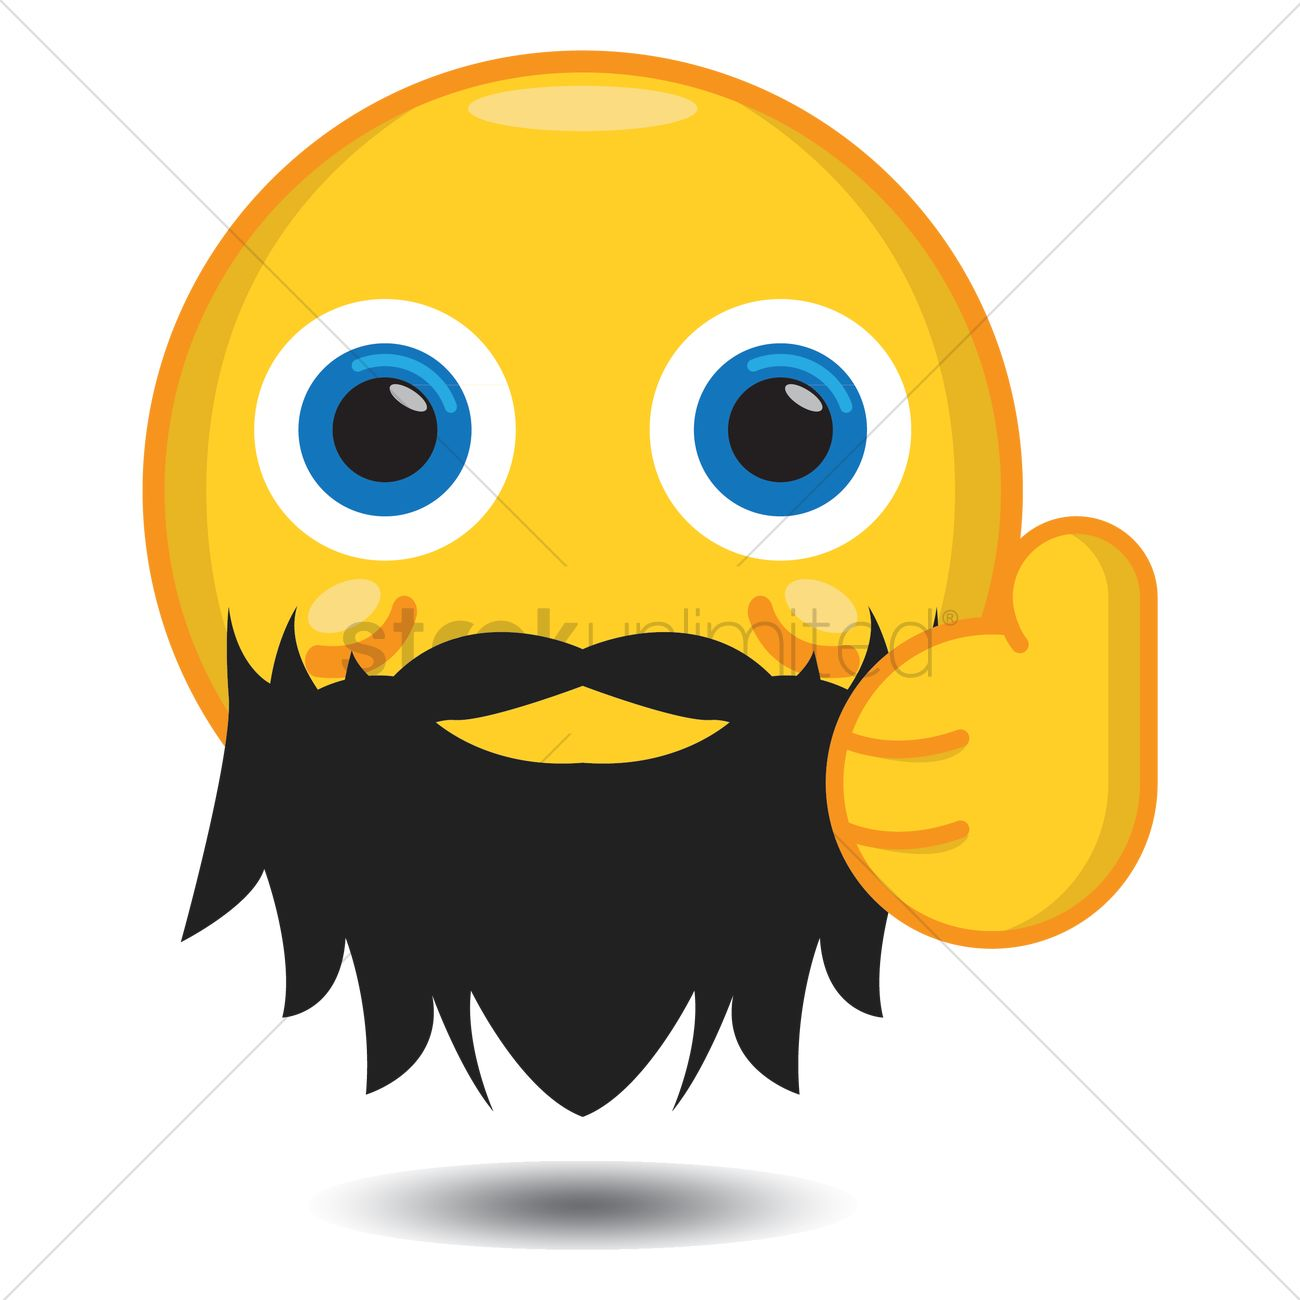 Smiley With Beard Showing Thumbs Up Vector Image 1282015